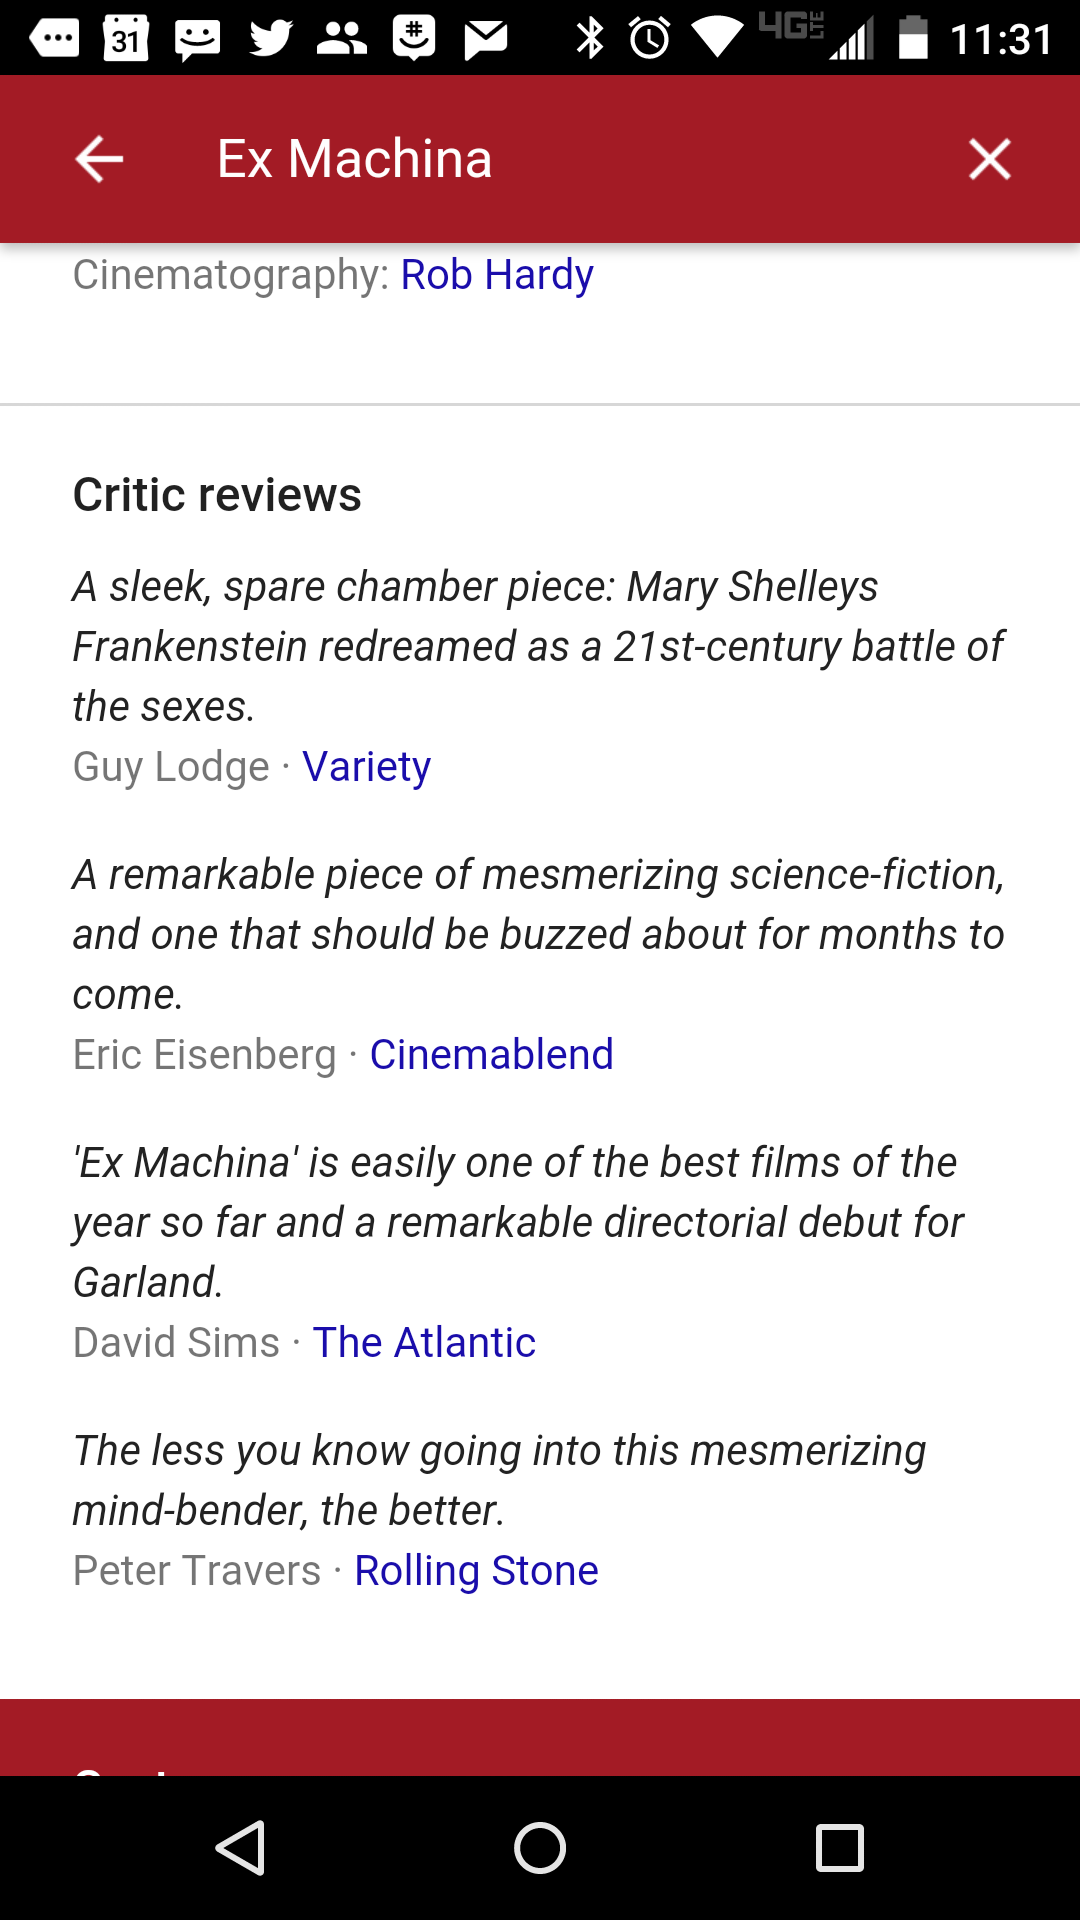 """Reviews of """"Ex Machina"""" in Google search results on an Android smartphone. This sort of content will show up when people search for TV shows and books later this year."""